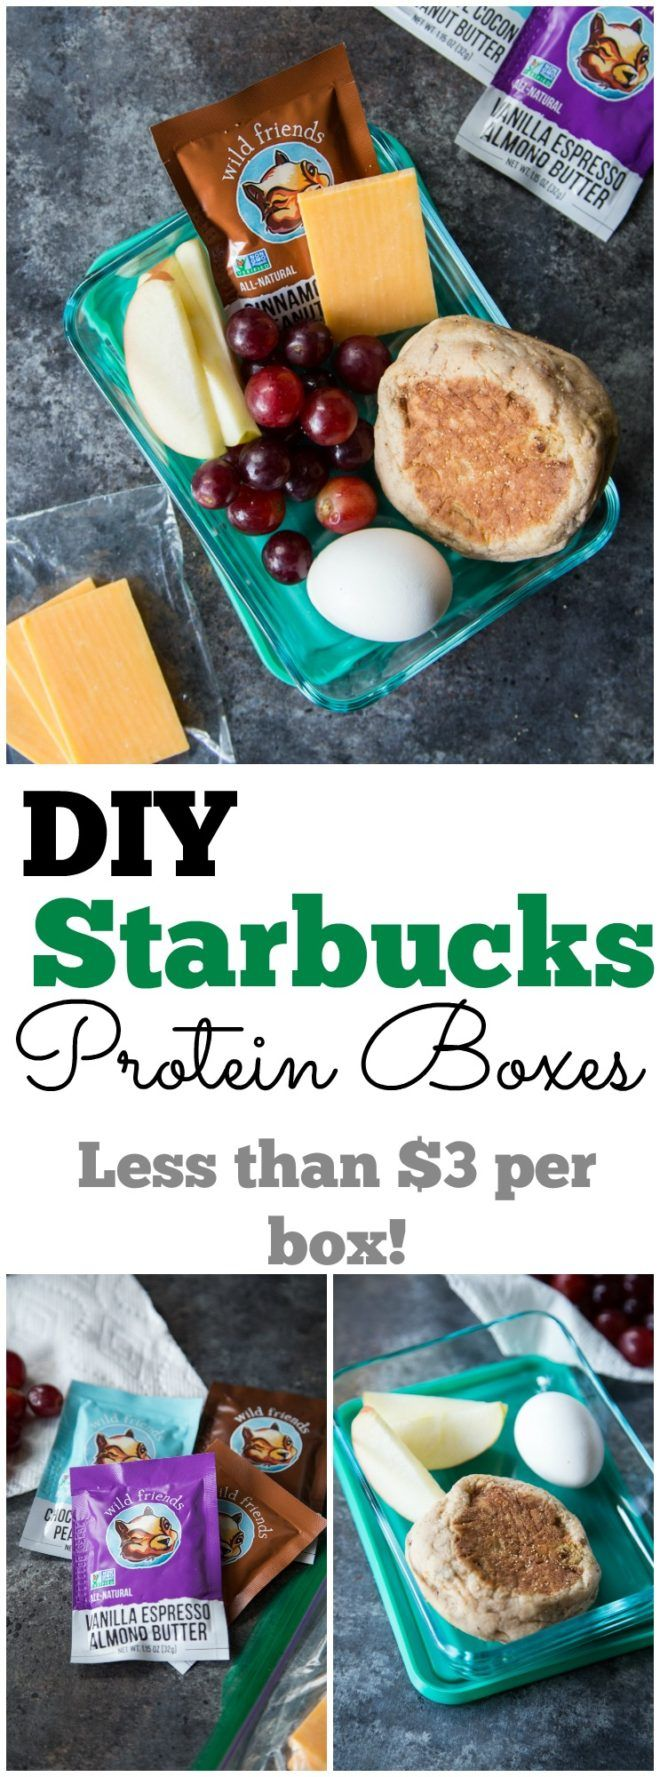 DIY Starbucks Protein Boxes - Country Cleaver